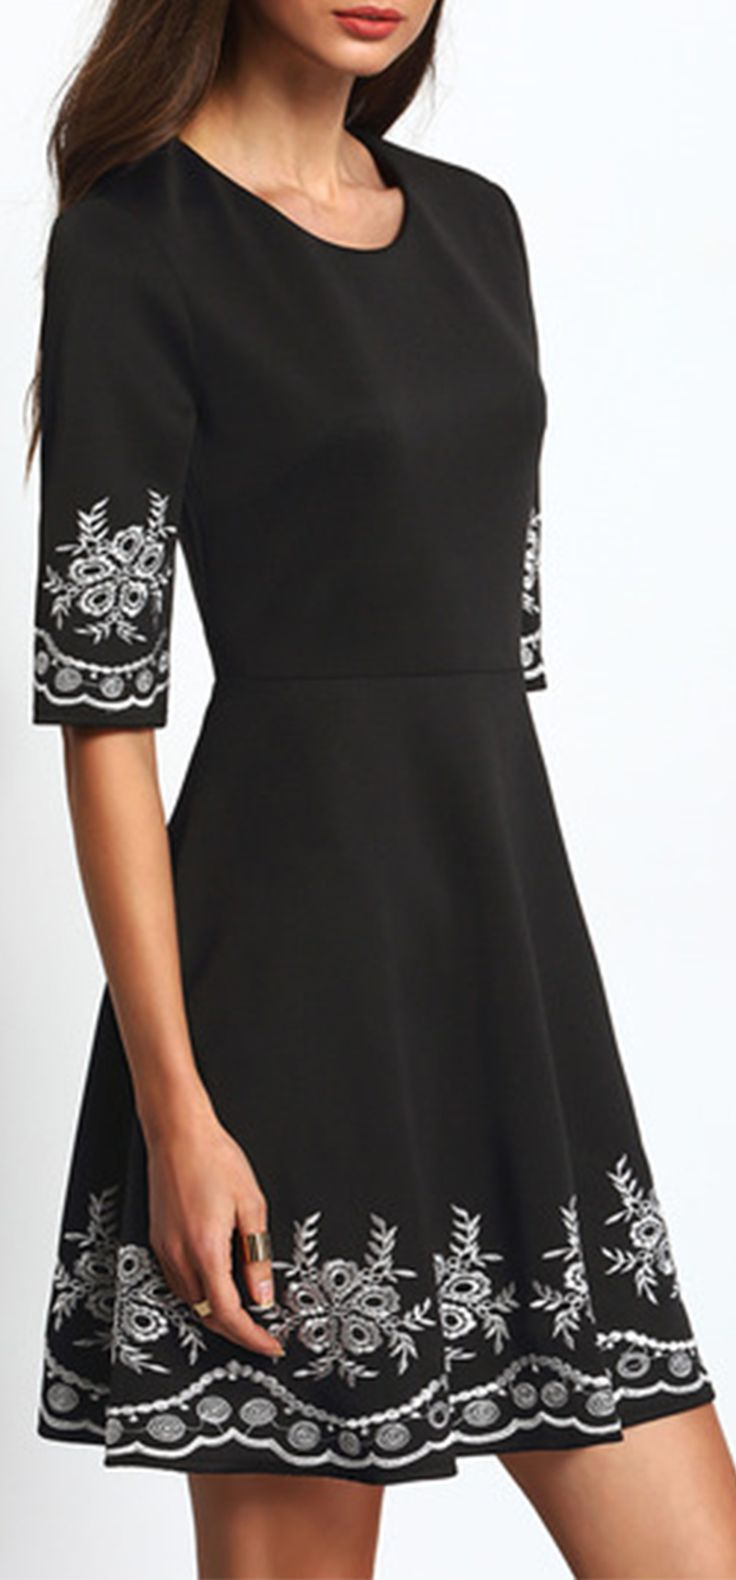 Black Half Sleeve Embroidered Flare Dress. absolutely gorgeous dress. i wore it to a formal event and received so many compliments. the material is also very nice, kind of thick and smooth. recommended